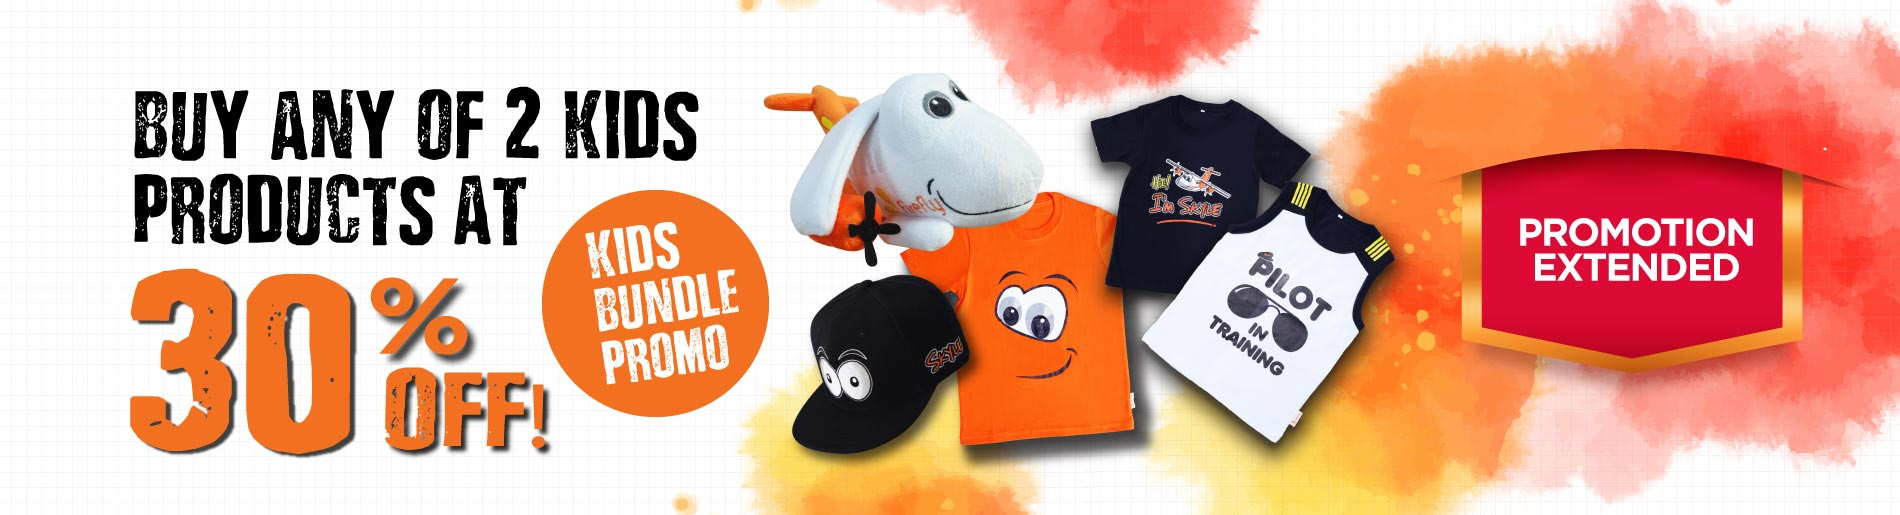 Kids Bundle Promo